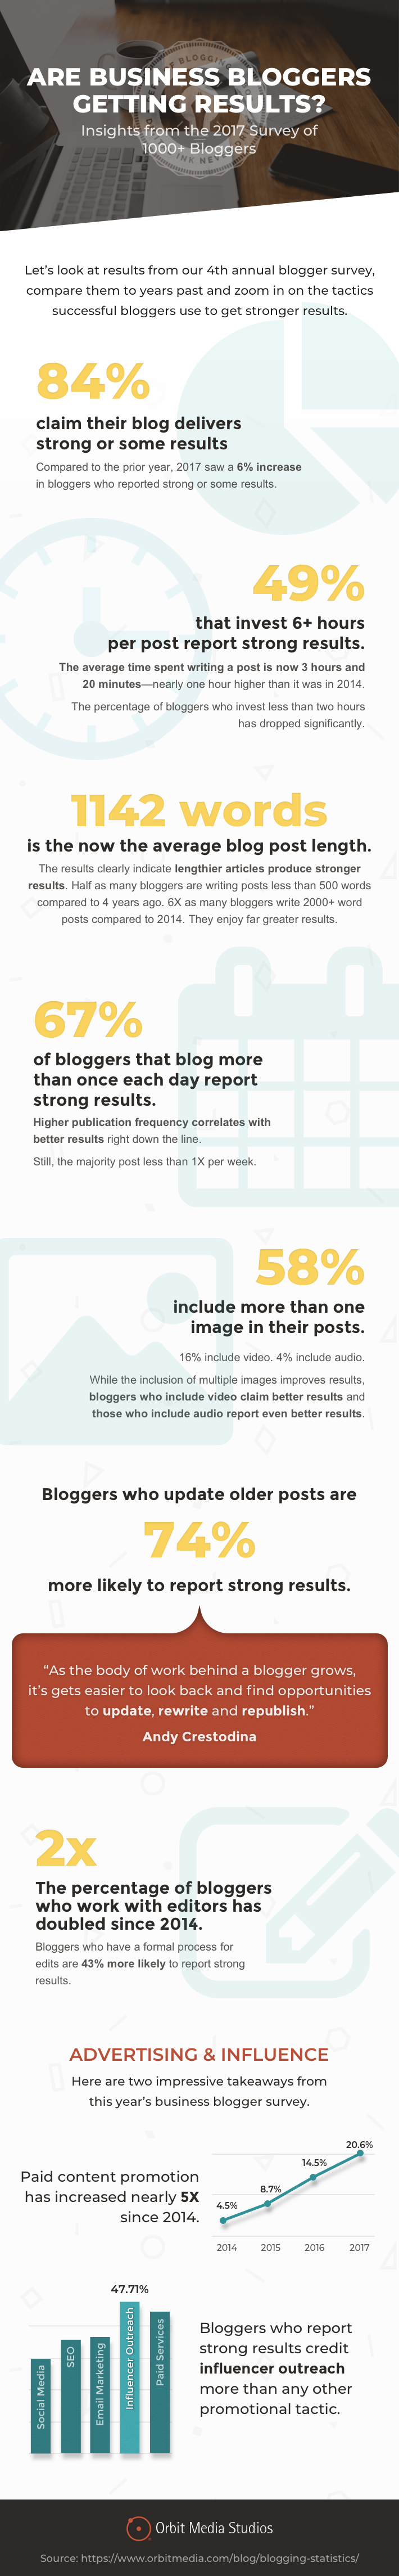 Does Business Blogging Still Get Results in 2017? New Data from 1,000 Bloggers - #Infographic